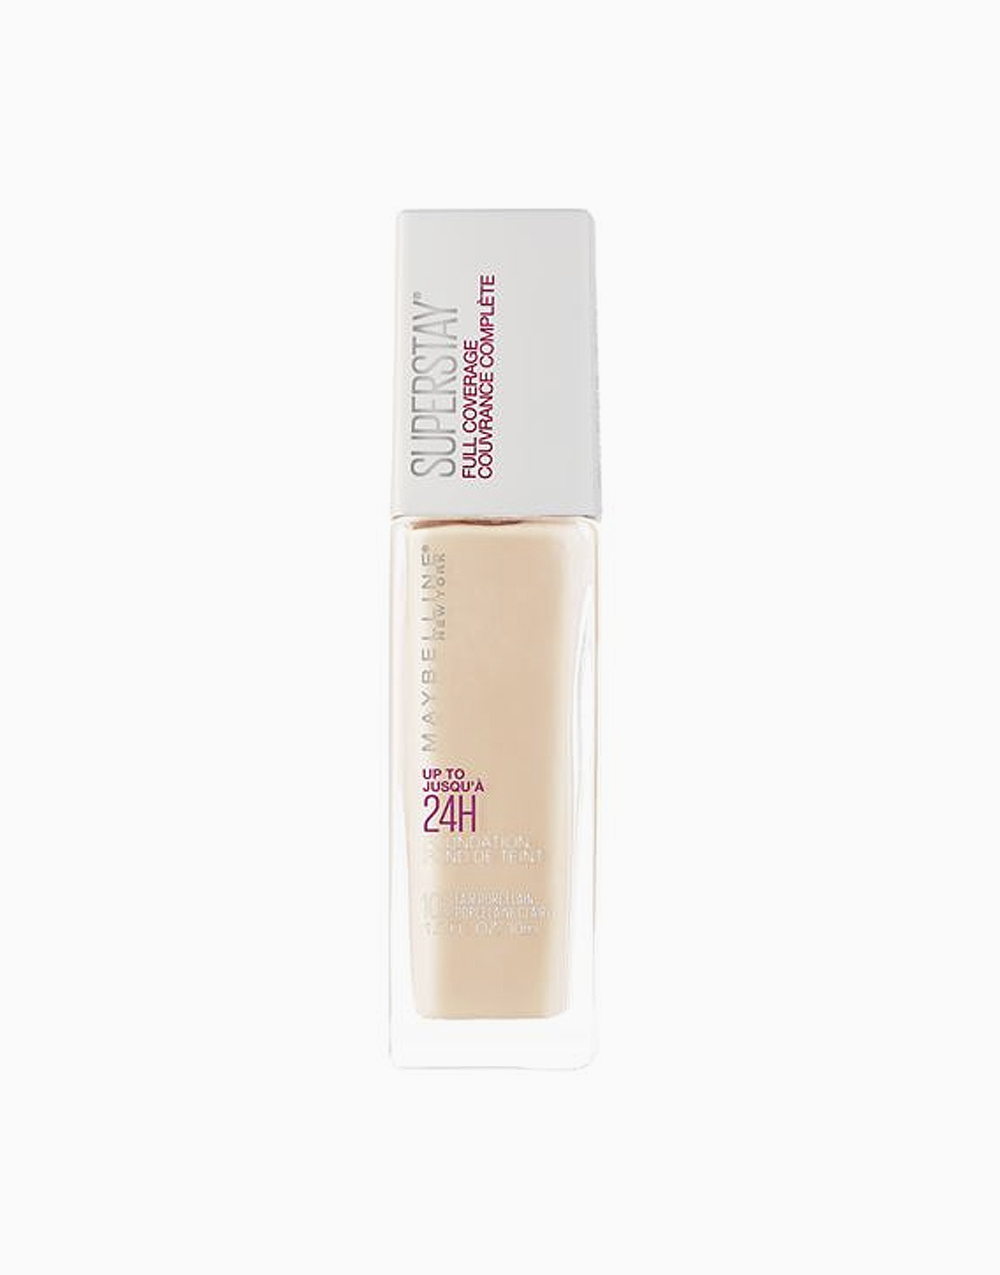 Super Stay 24H Full Coverage Foundation by Maybelline |